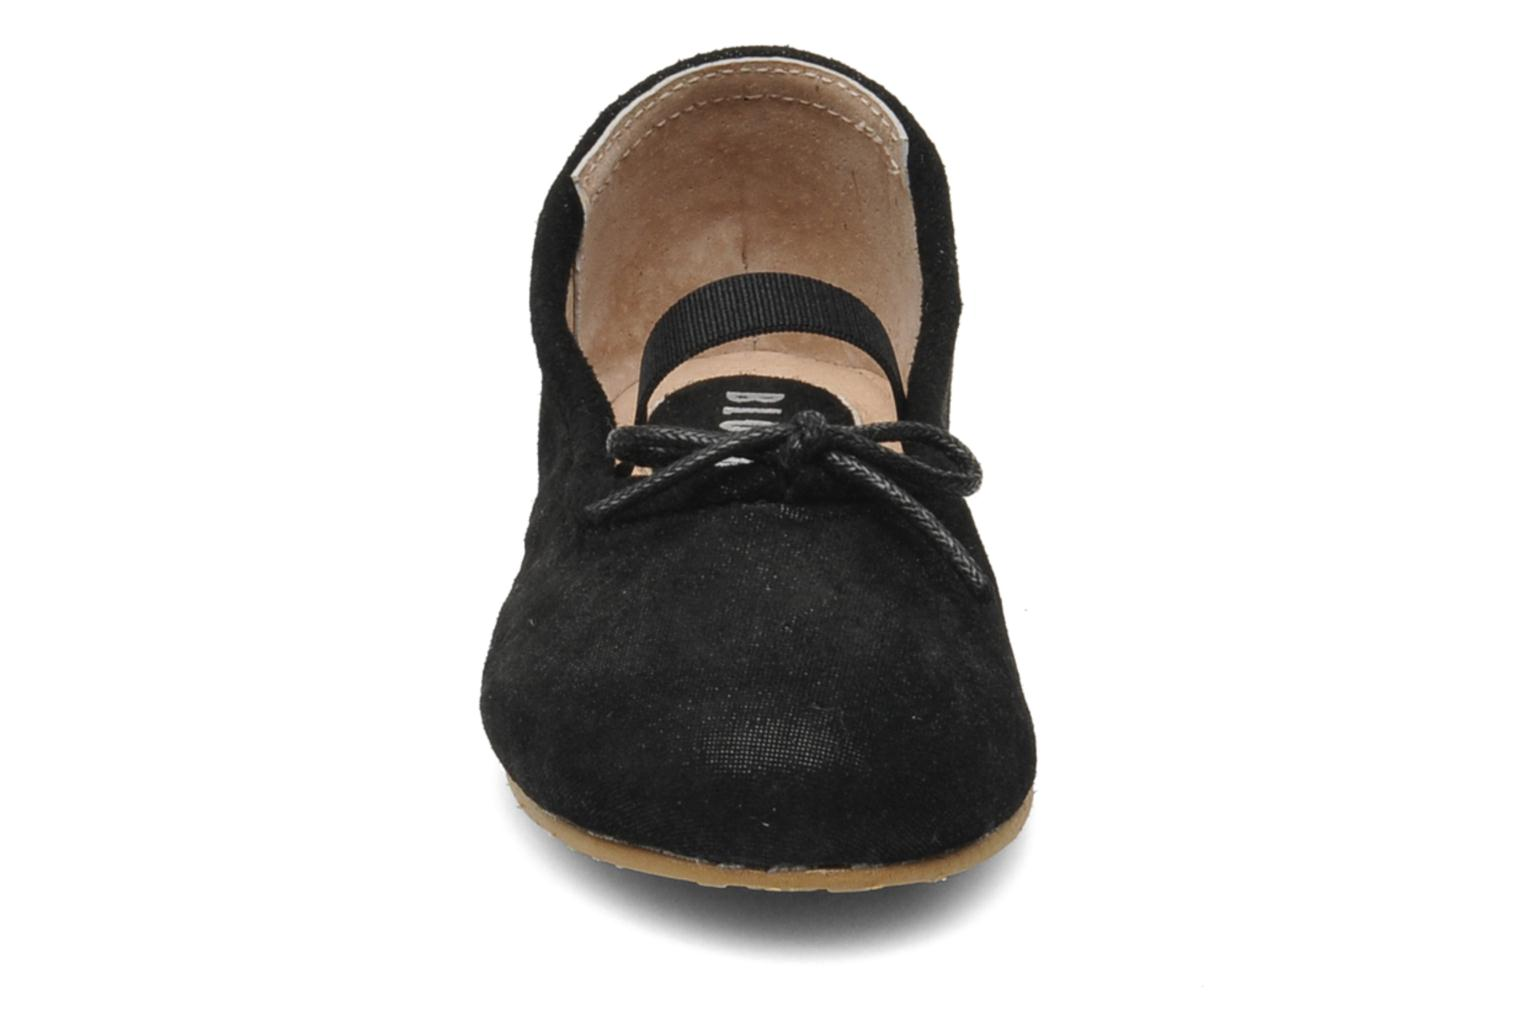 Toddler Sirenetta Black